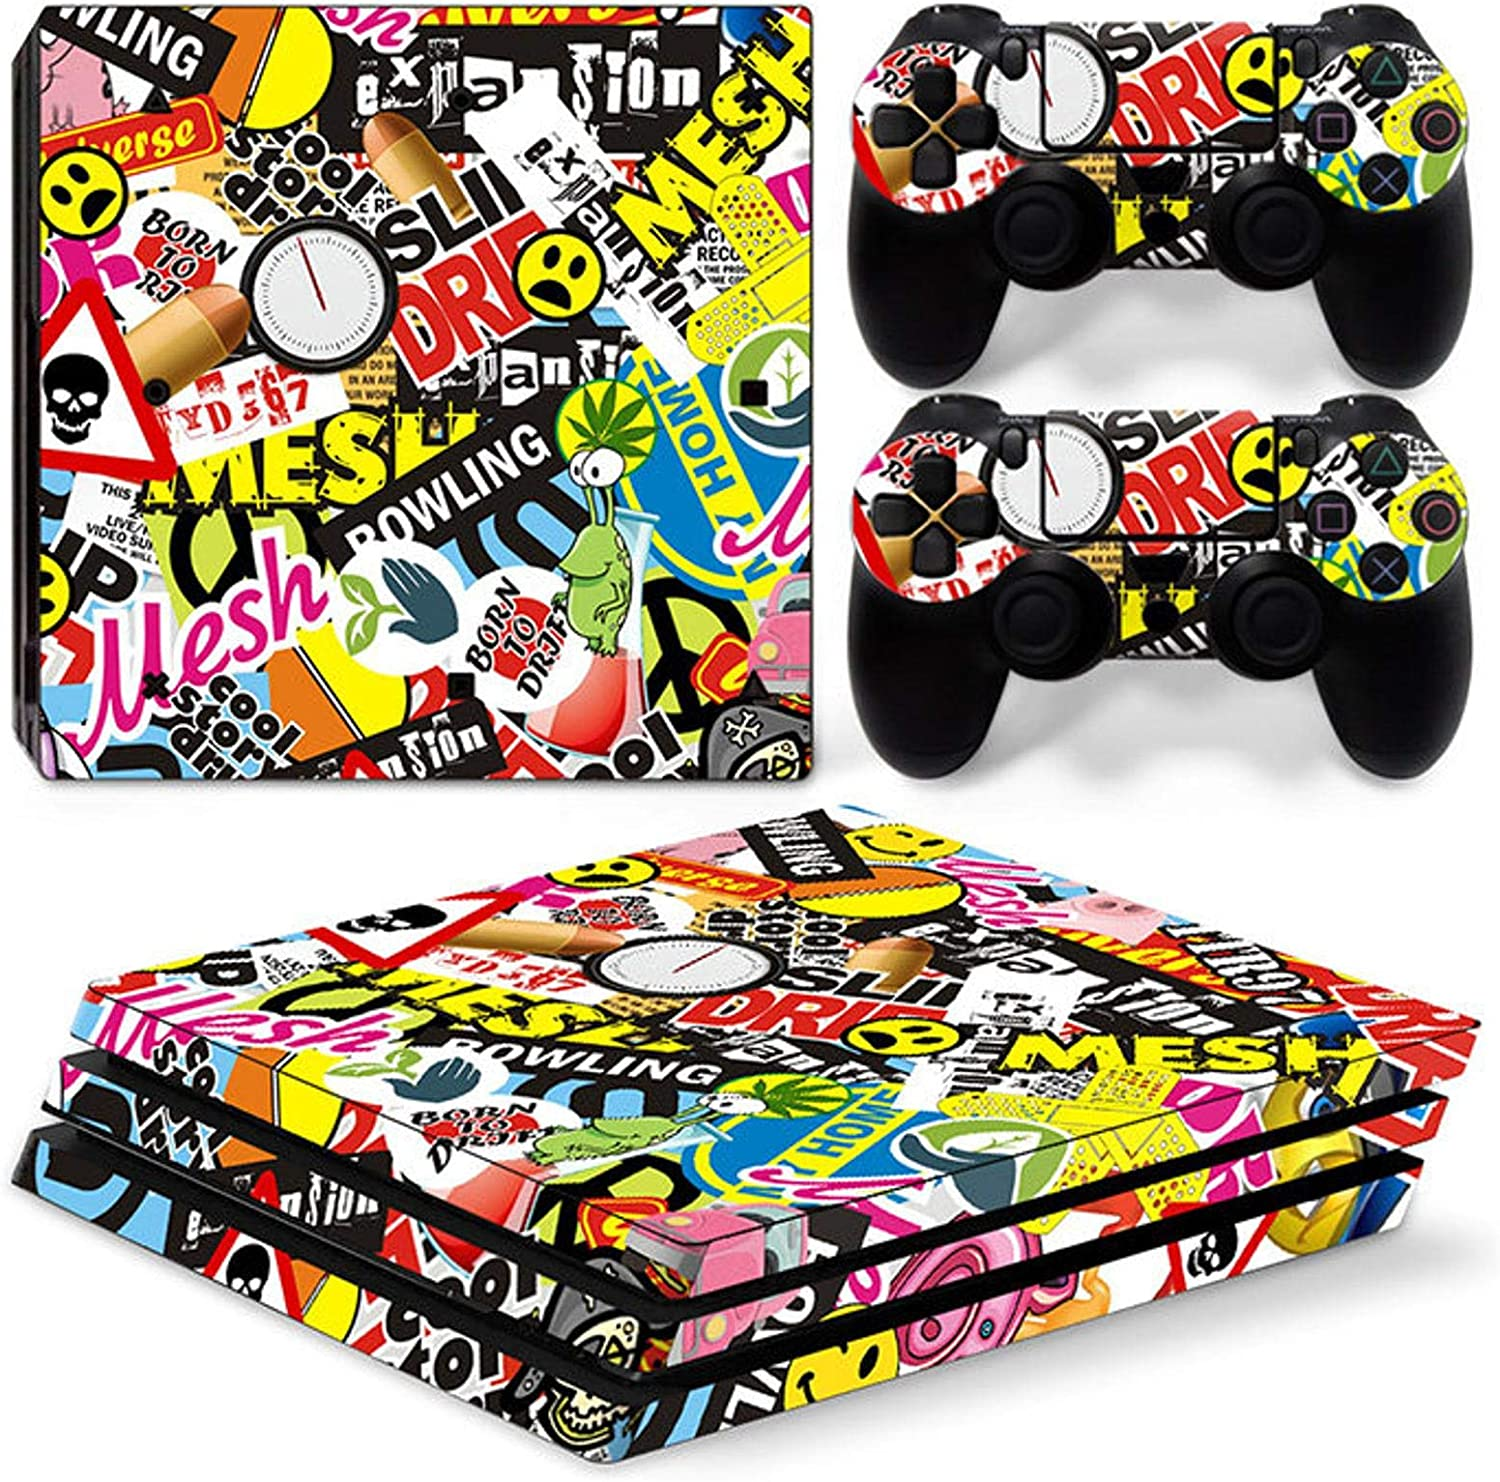 Zoomhitskins Ps4 Pro Skins 2 Controller And 1 Console Vinyl Stickers Durable Bubble Free Goo Free Made In Canada Amazon Ca Electronics